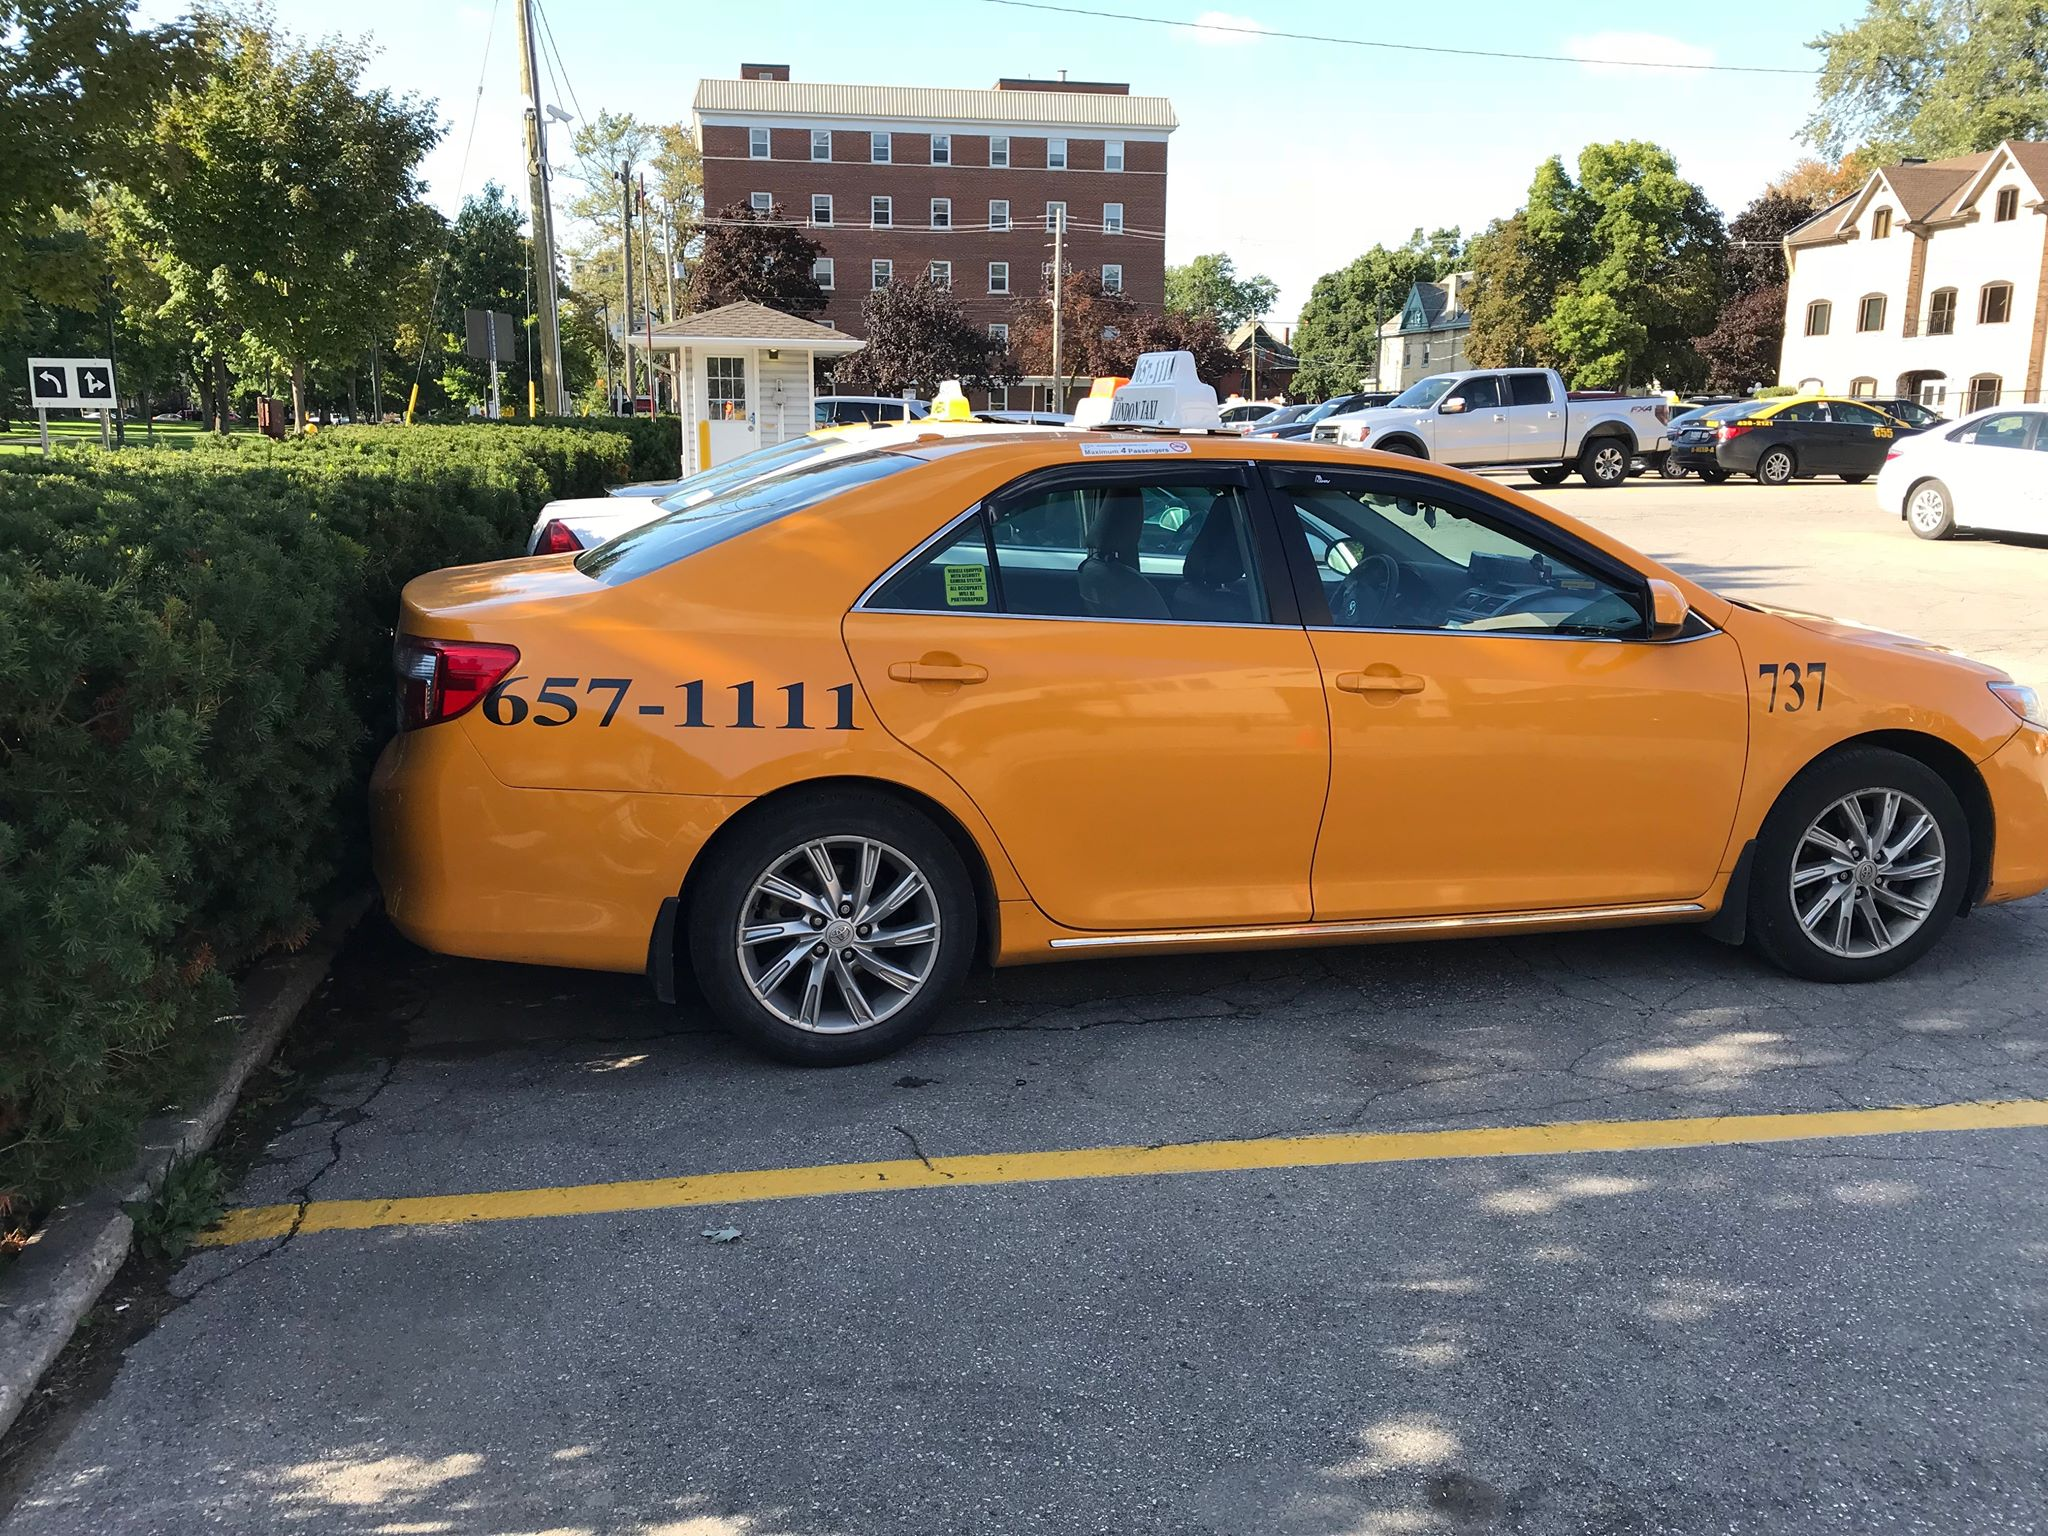 Potential bylaw changes have taxi businesses in uproar